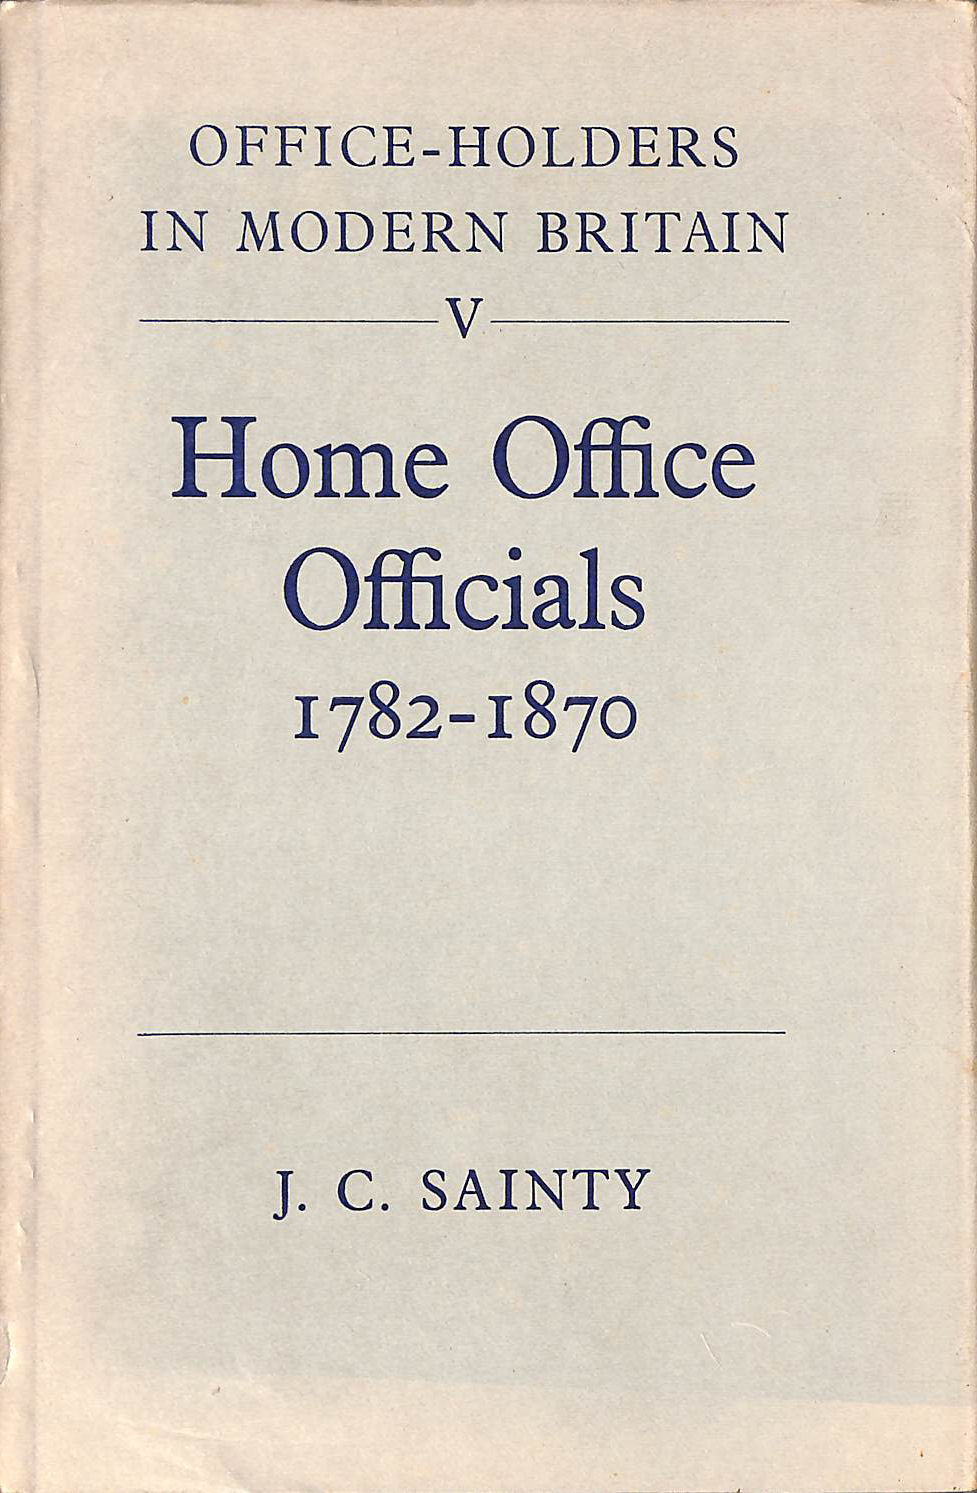 Image for Home Office Officials, 1782-1870 (Office-Holders in Modern Britain)